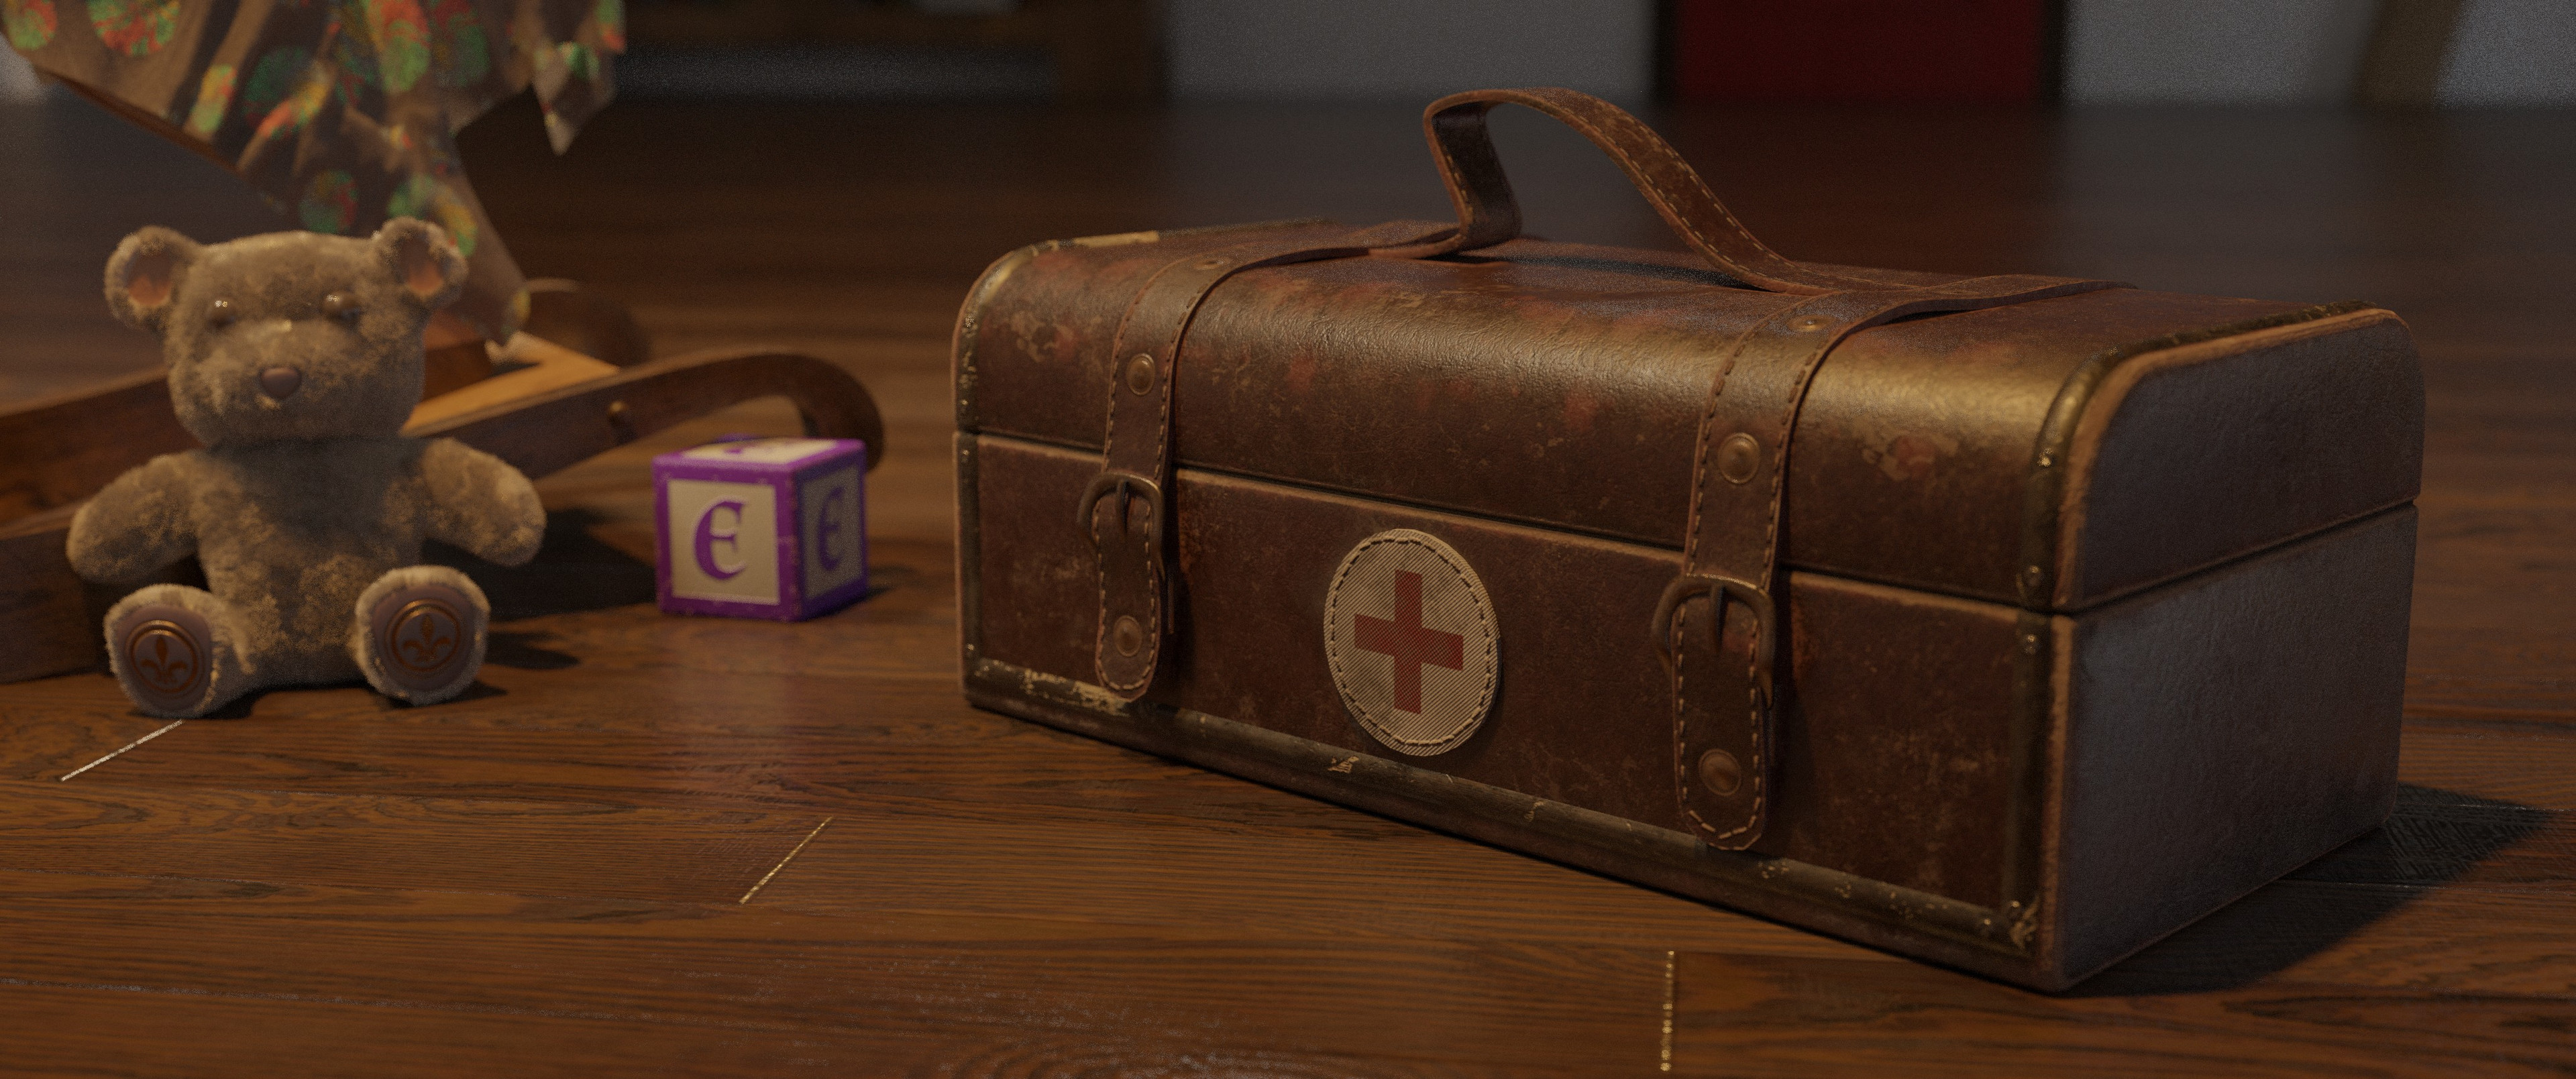 Doctor's Bag HiRes